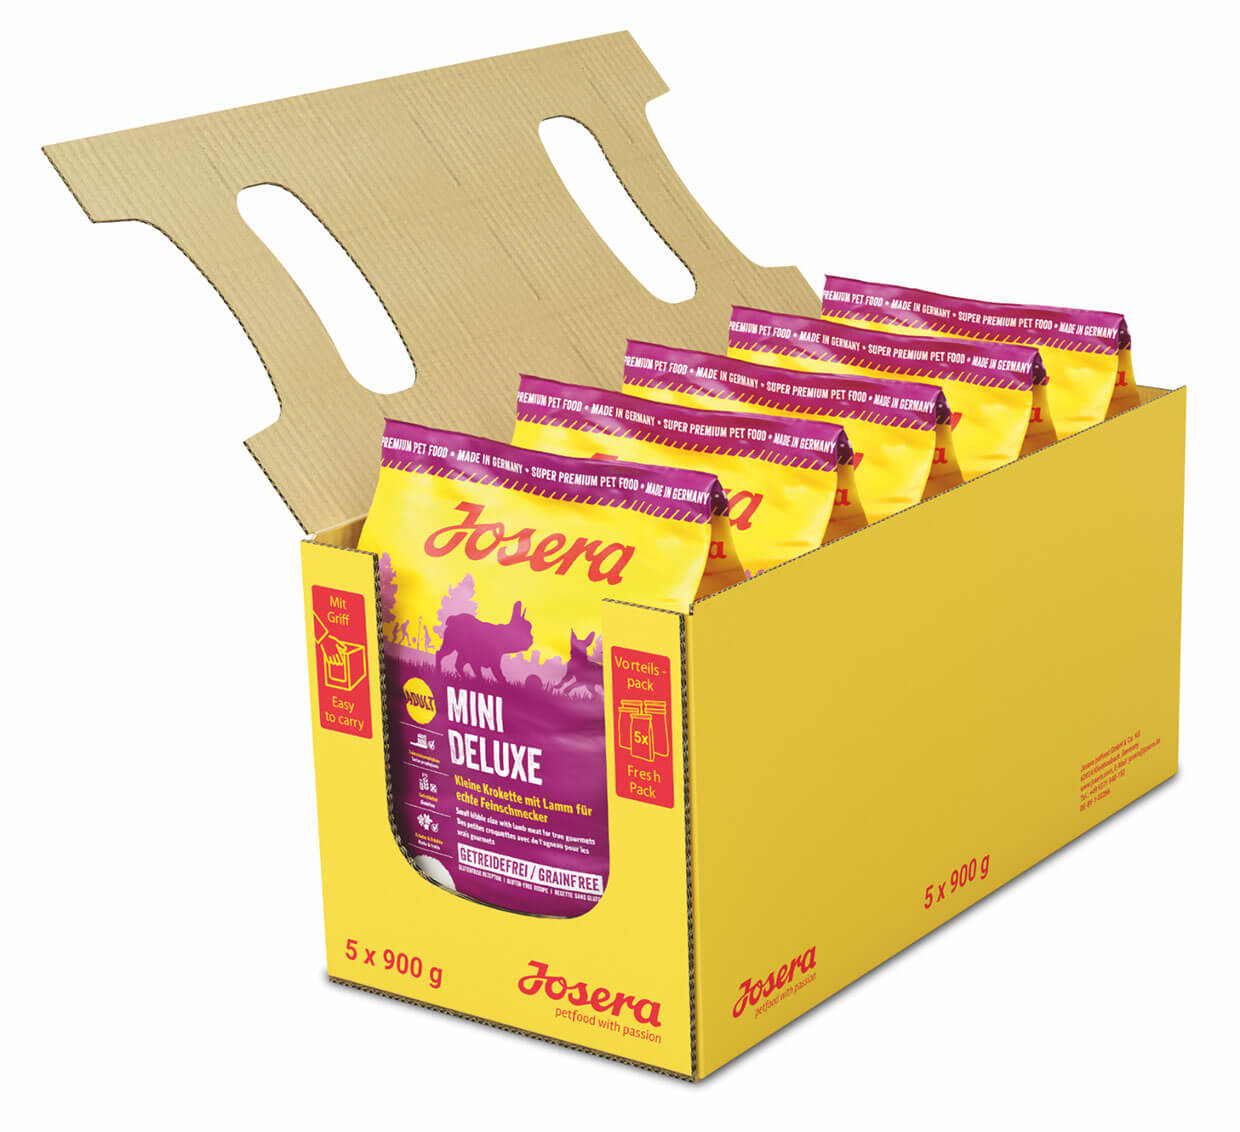 josera-dog-food-minideluxe-5x900g_1